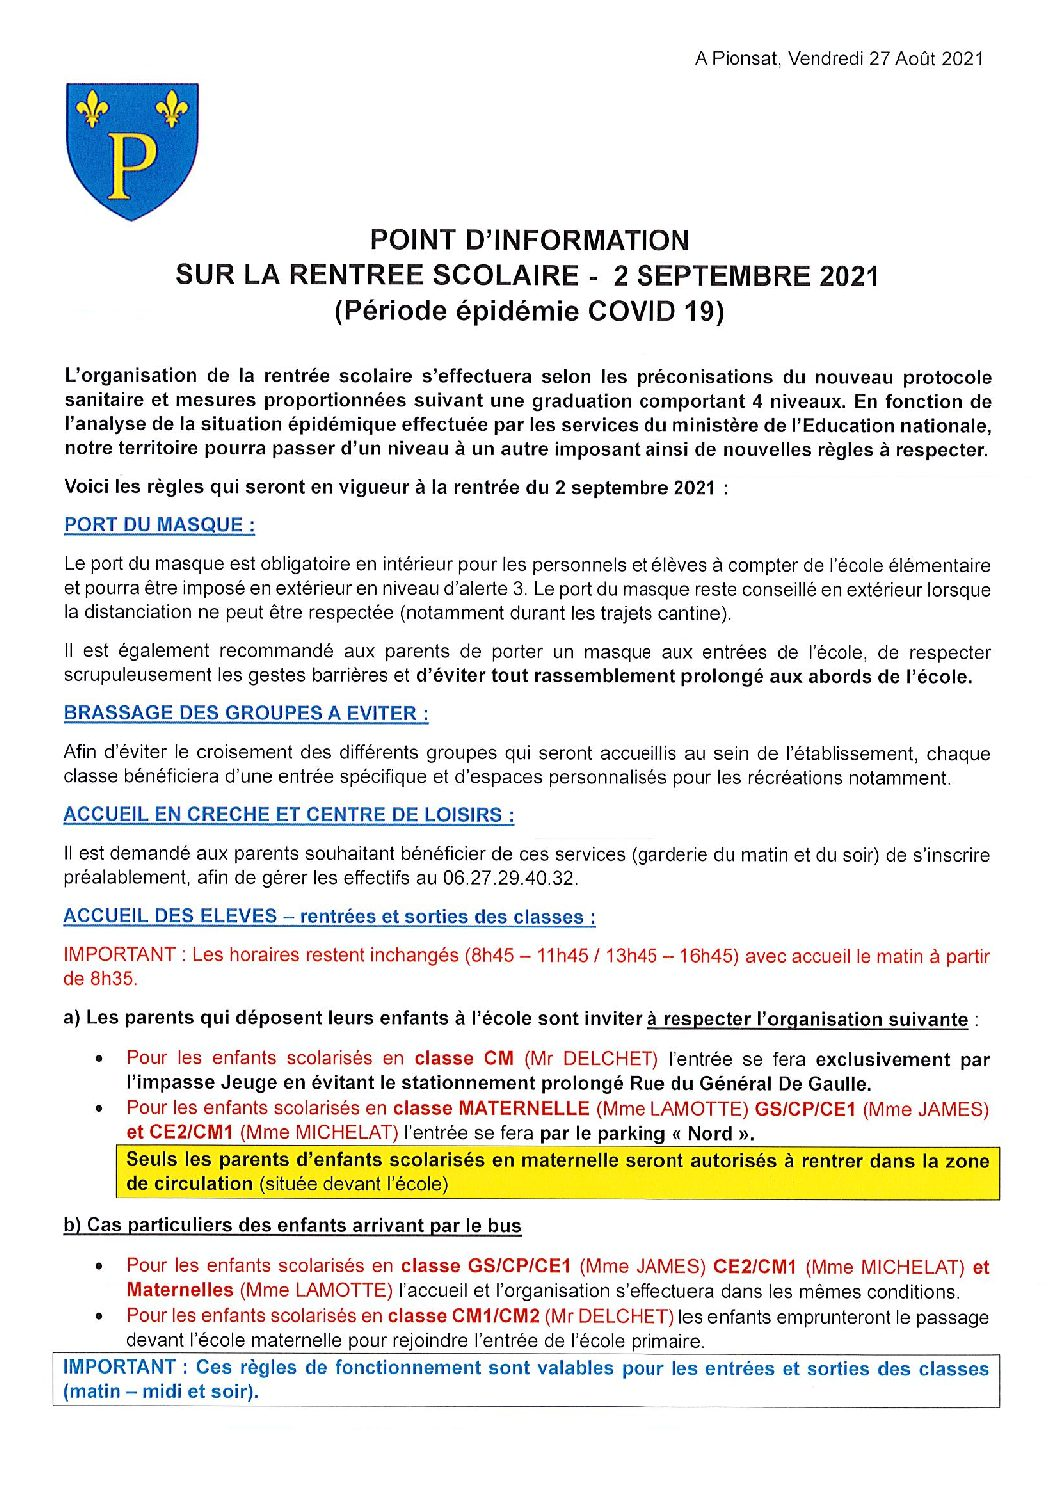 POINT INFORMATION RENTREE SCOLAIRE